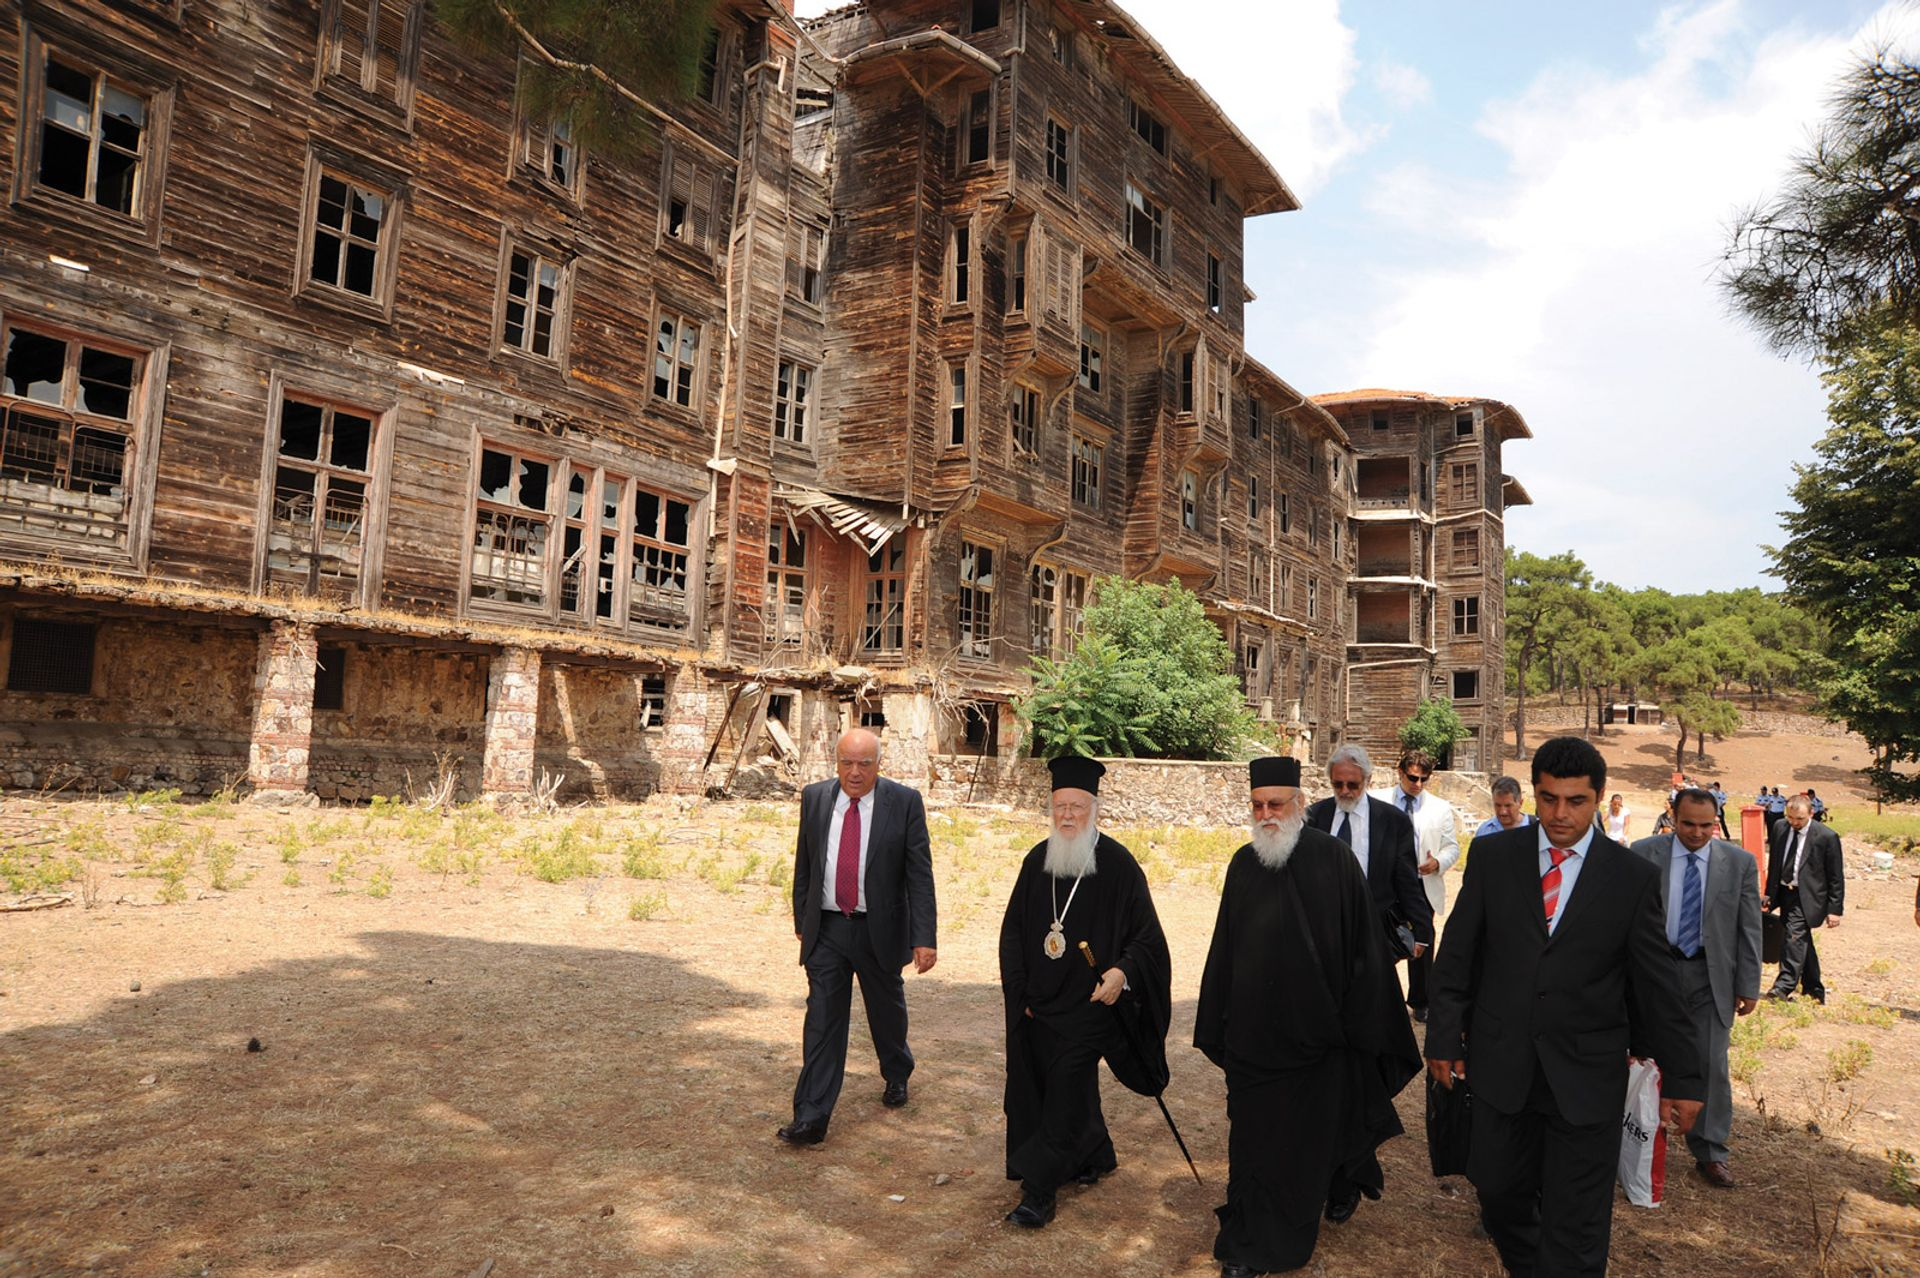 A group including the spiritual leader of Orthodox Christians, Patriarch Bartholomew, visits the dilapidated Prinkipo Orphanage. Turkey was ordered to return the site to the Ecumenical Patriarchate in a 2010 ruling by the European Court of Human Rights Photo: Nikolaos Manginas